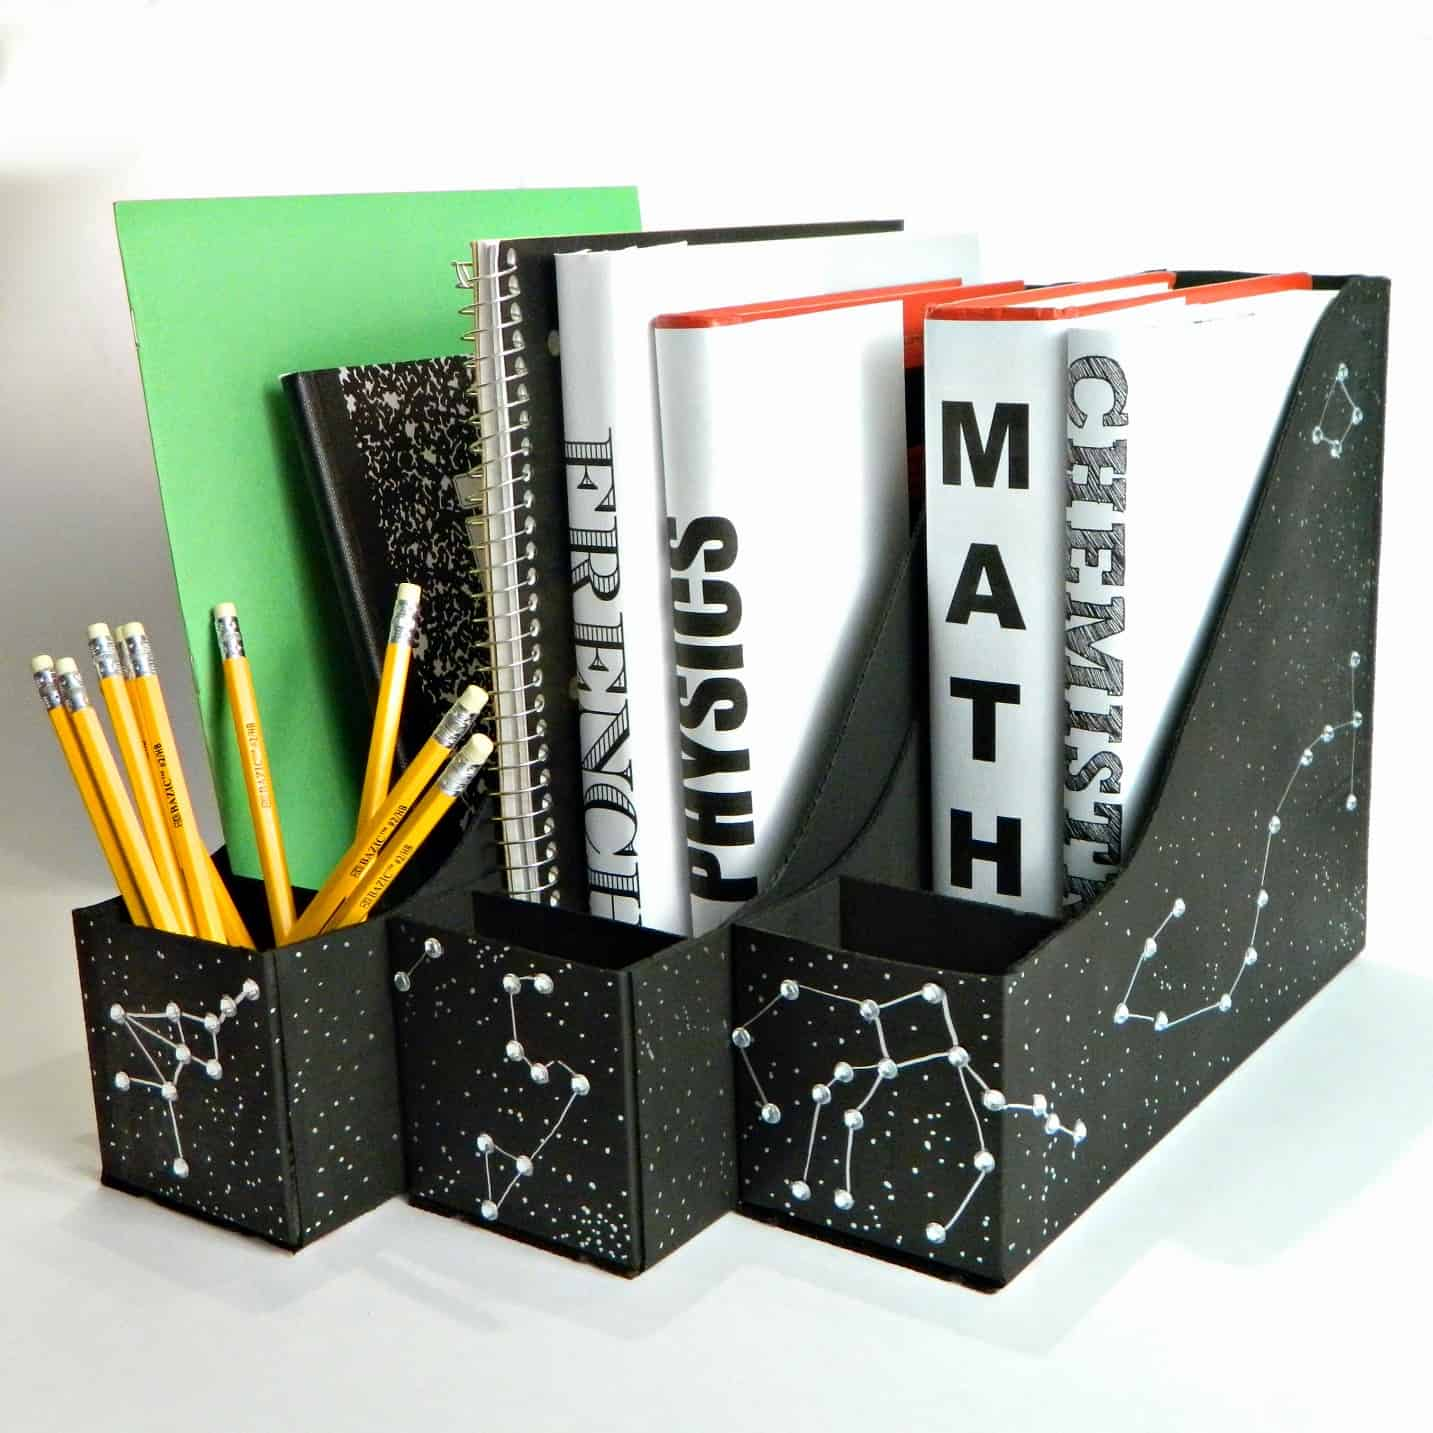 Black magazine holders with star constellation patterns on it